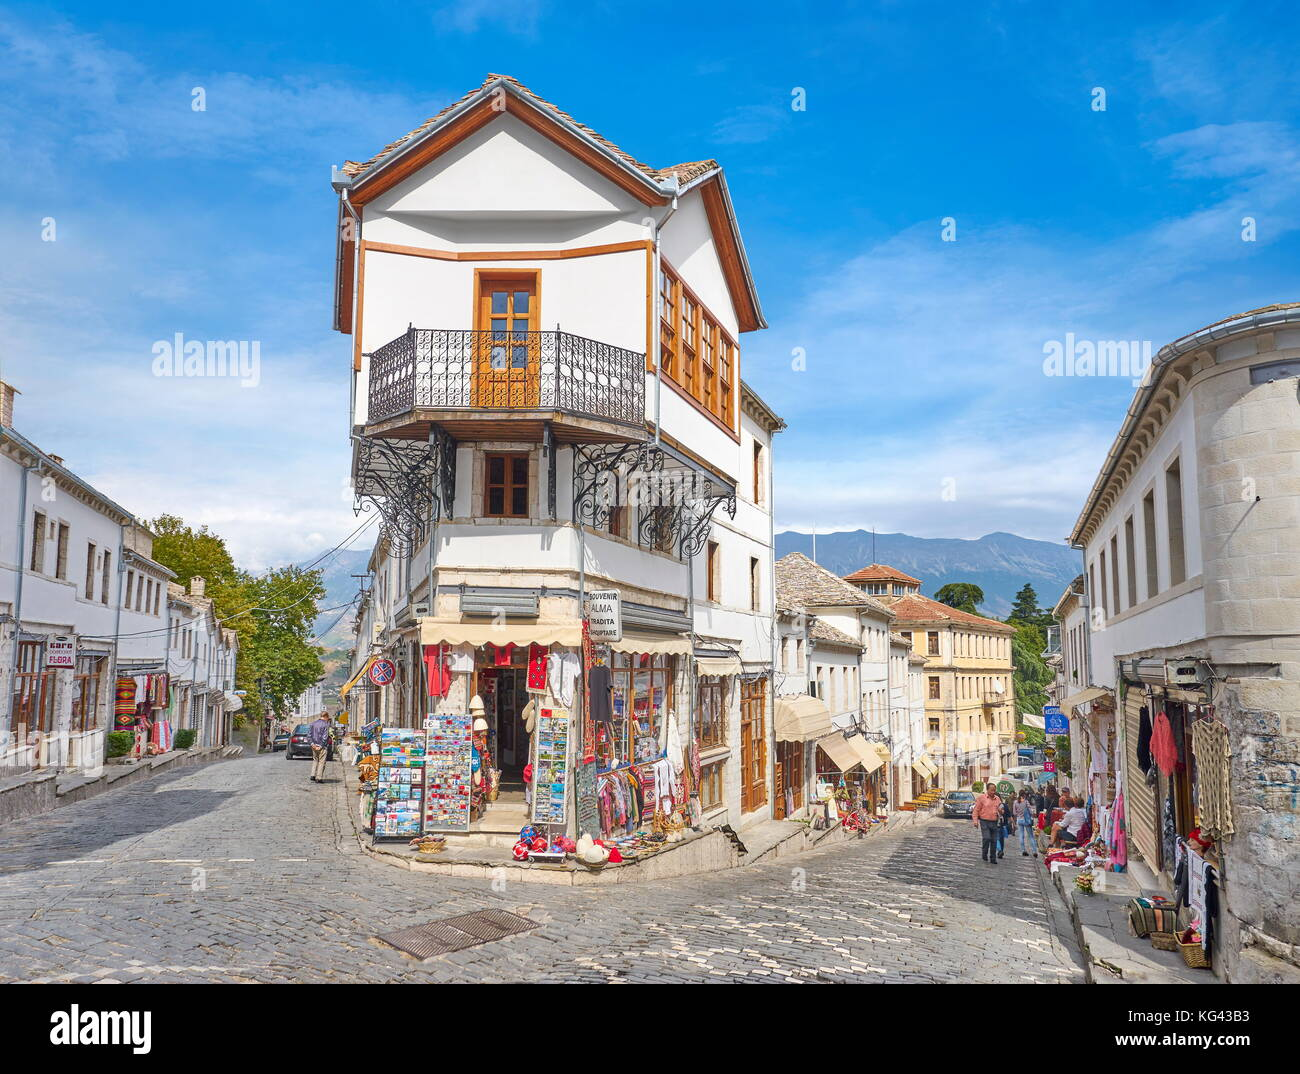 Old town in Gjirokaster, UNESCO World Heritage Site, Albania Stock Photo